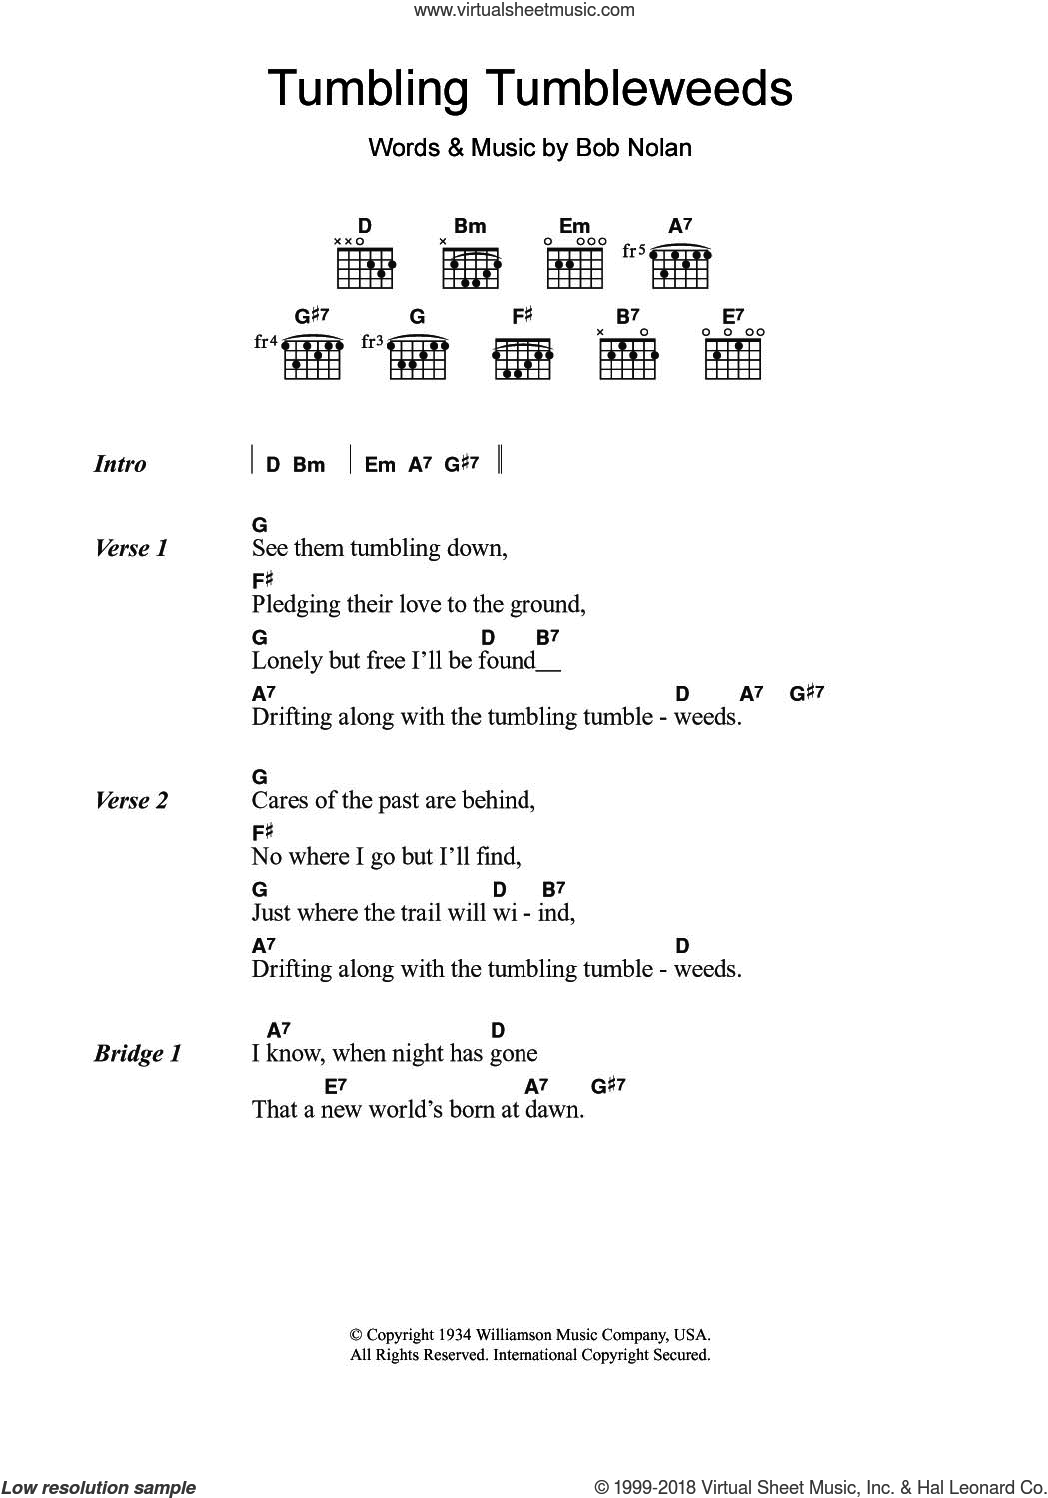 Tumbling Tumbleweeds sheet music for guitar (chords) by Sons Of The Pioneers and Bob Nolan, intermediate skill level